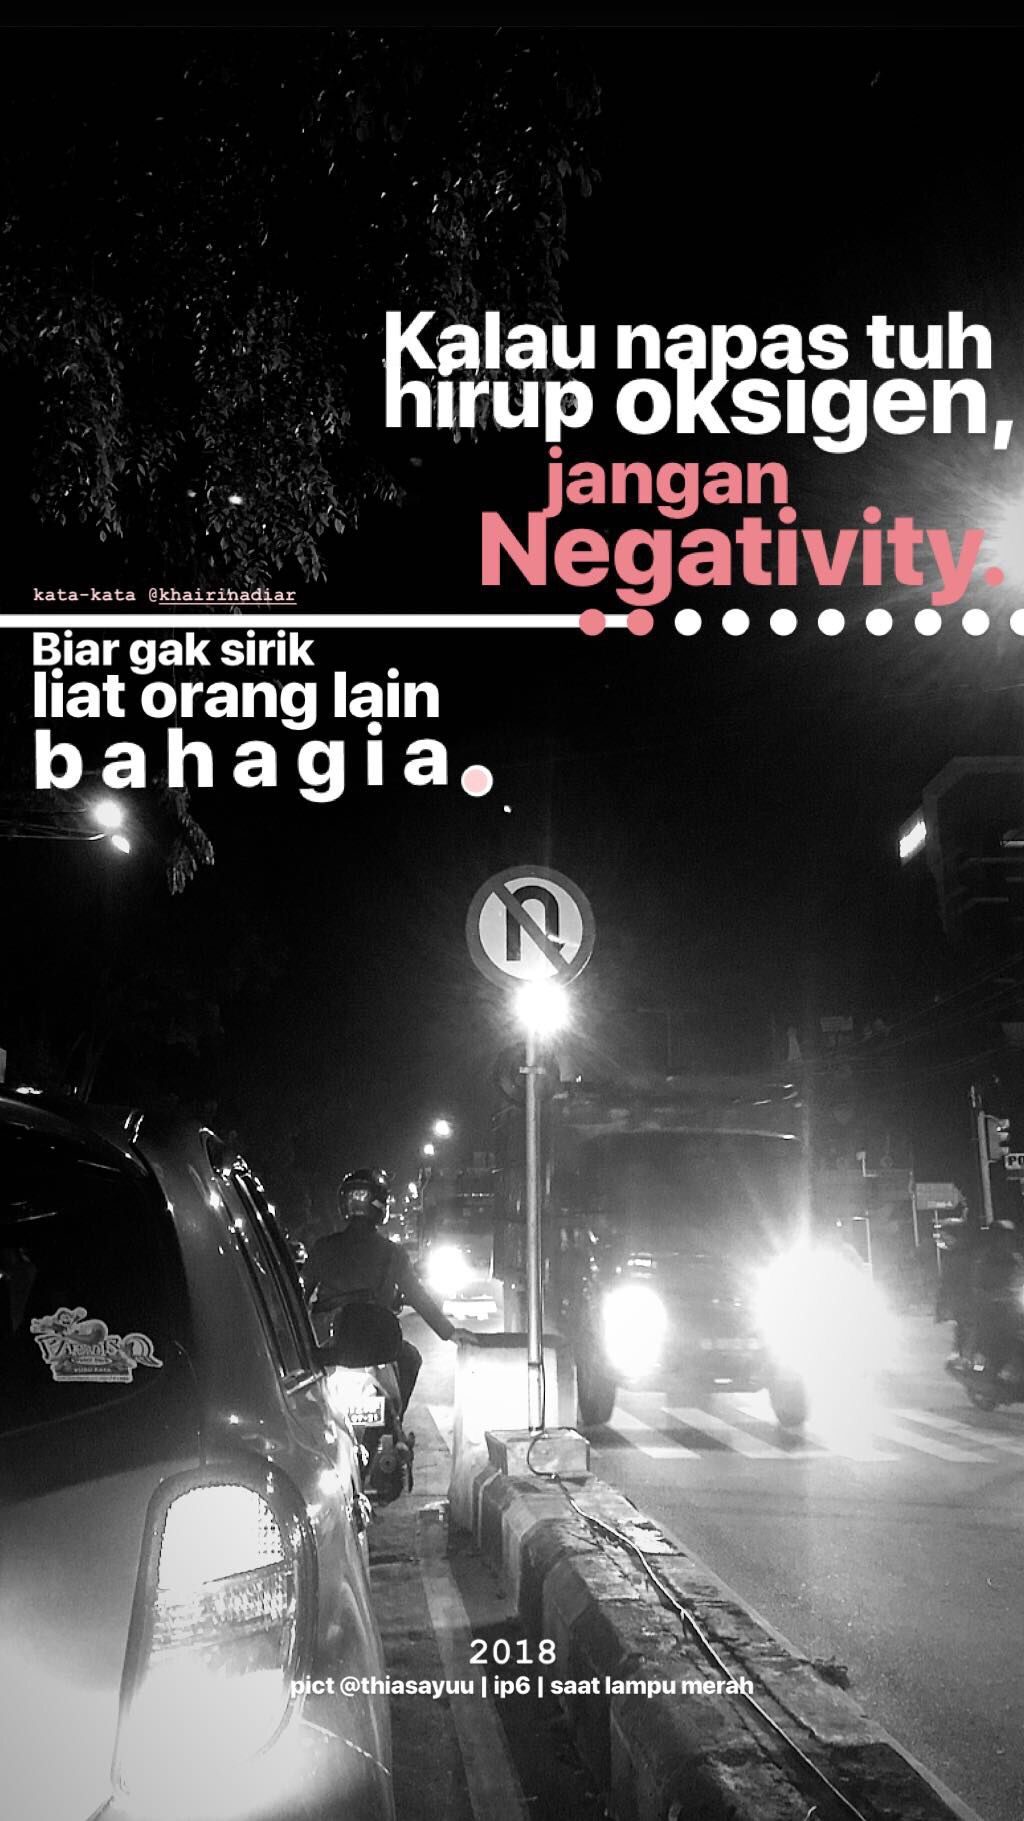 Quotes Madewithstories Khairinadiar Night Traffic Kata Kata Indah Kutipan Humor Kutipan Buku